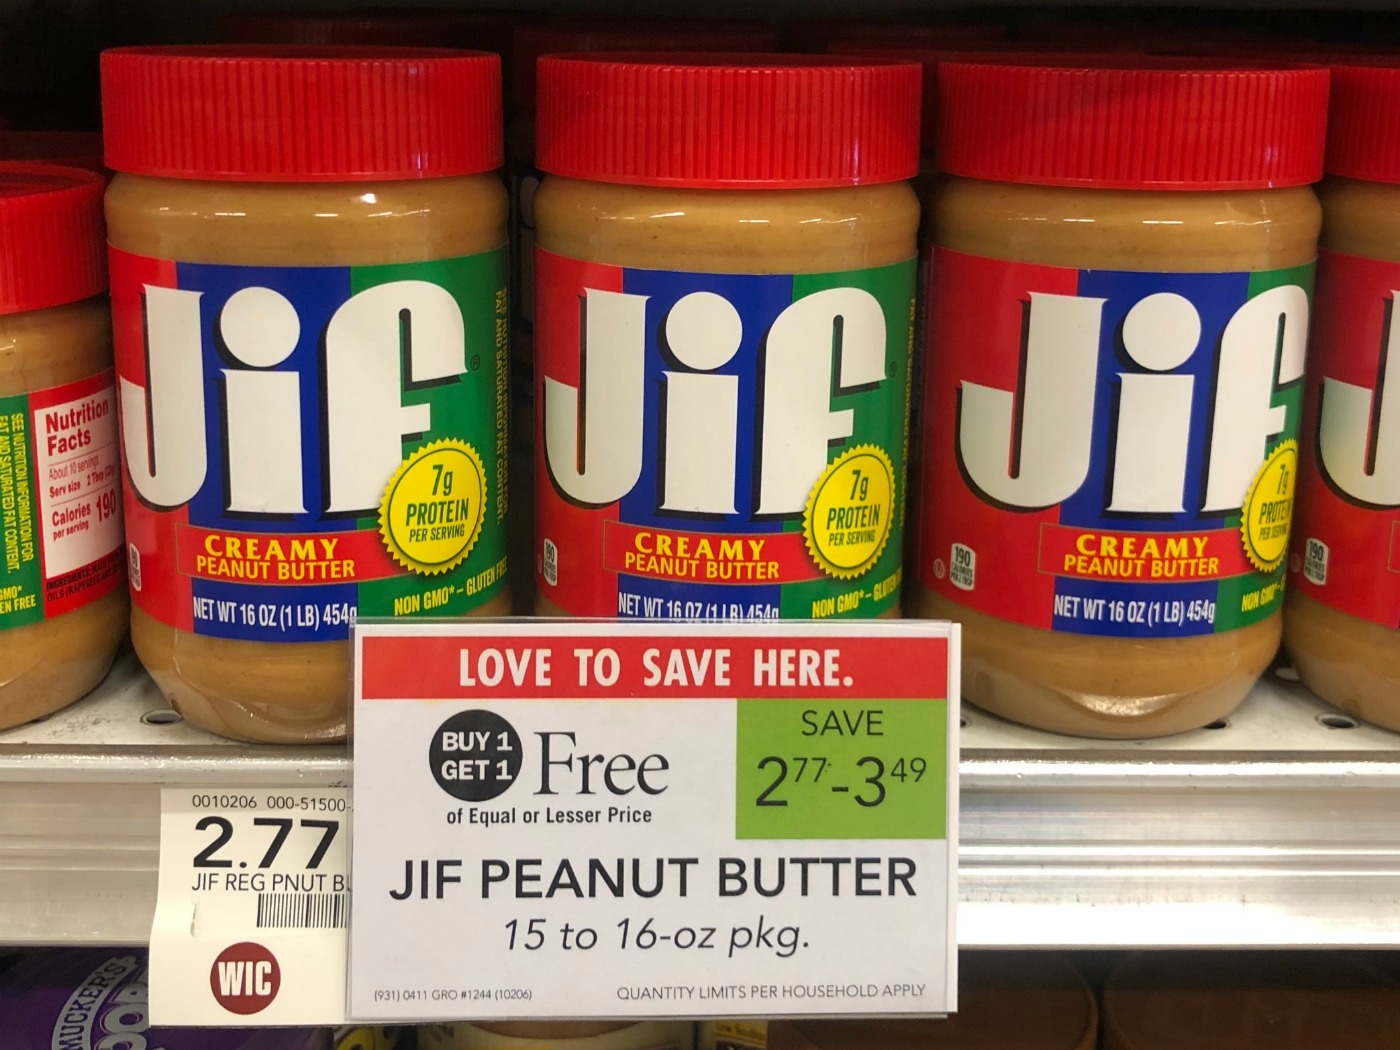 Jif Peanut Butter Only 39¢ At Publix